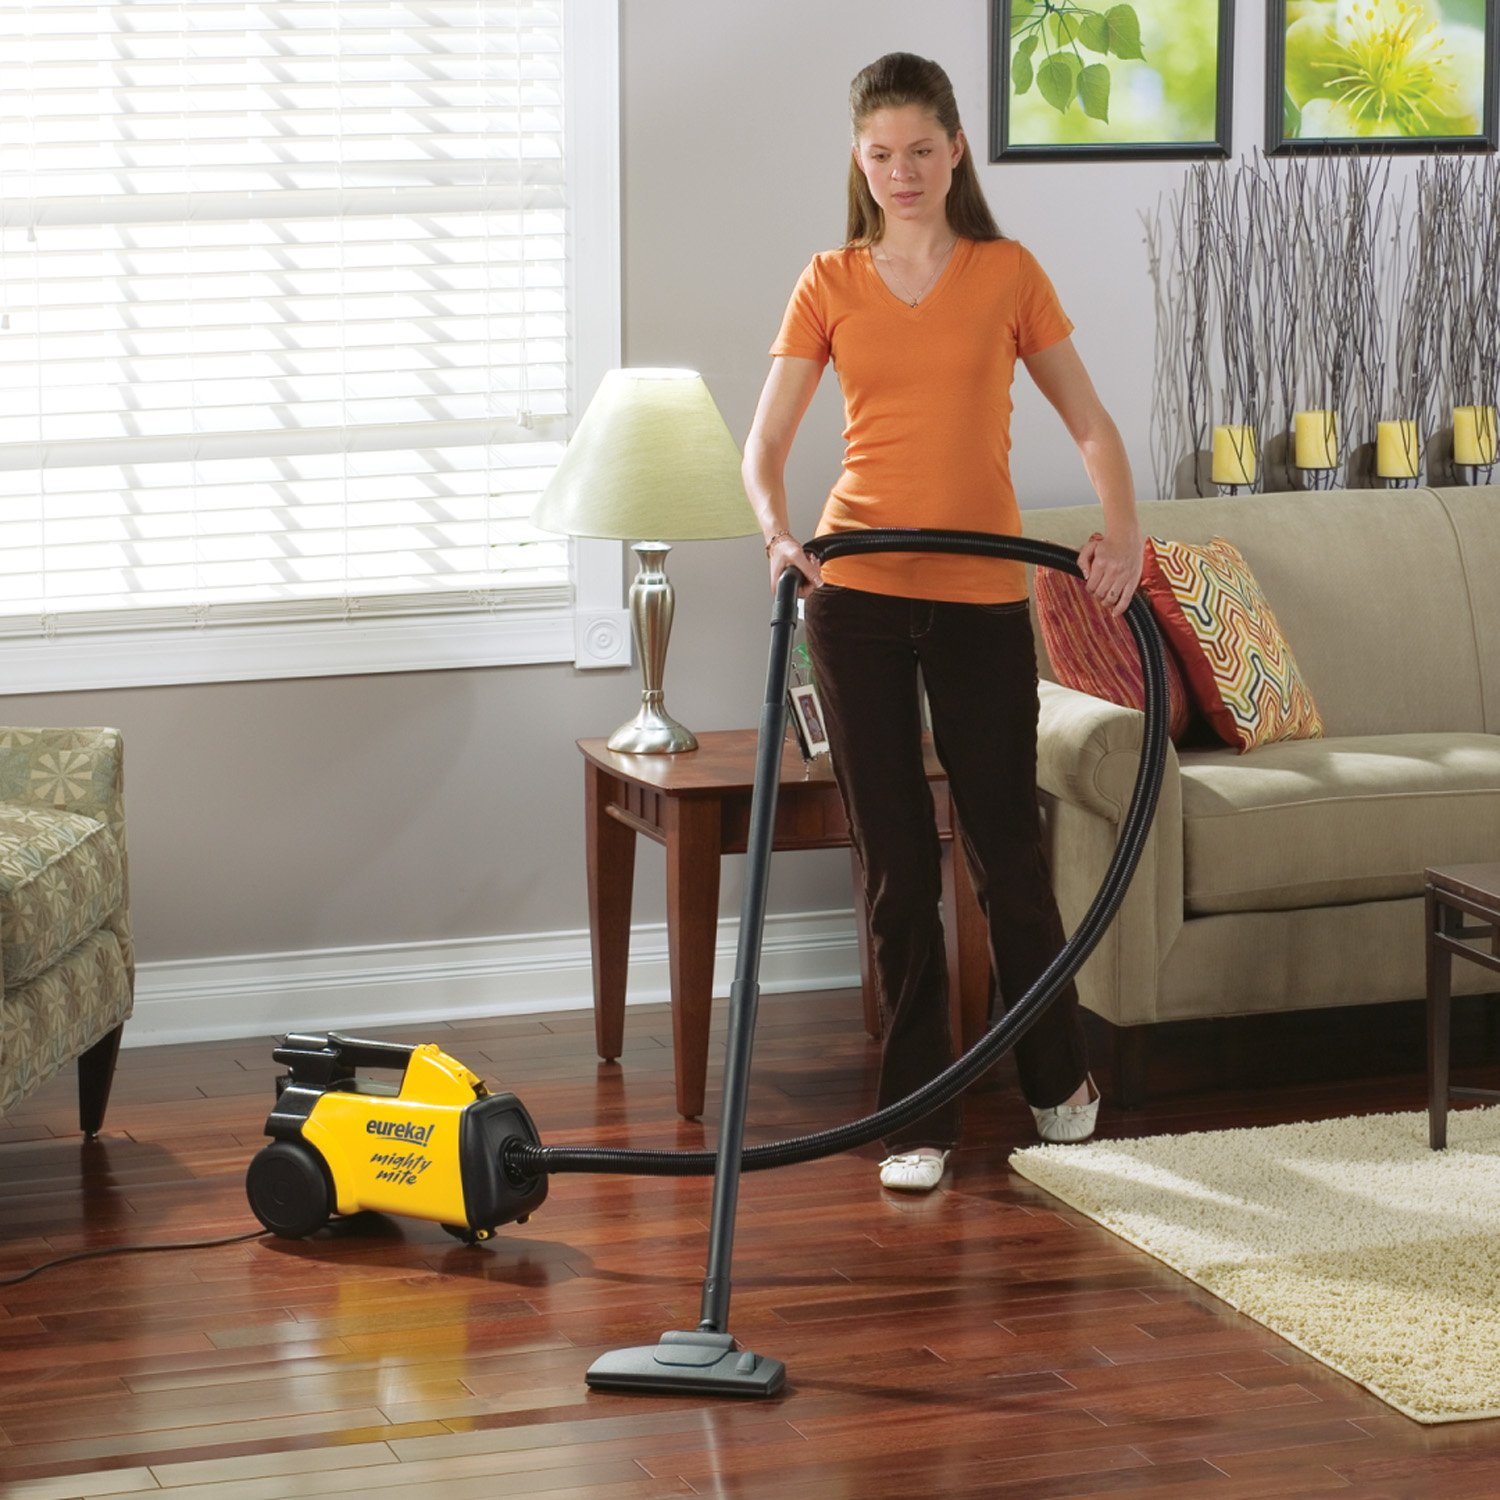 The Eureka 3670G Mighty Mite costs under 100 dollars and is compact yet  very strong. - Best Vacuum For Hardwood Floors €� A 2016-2017 Guide